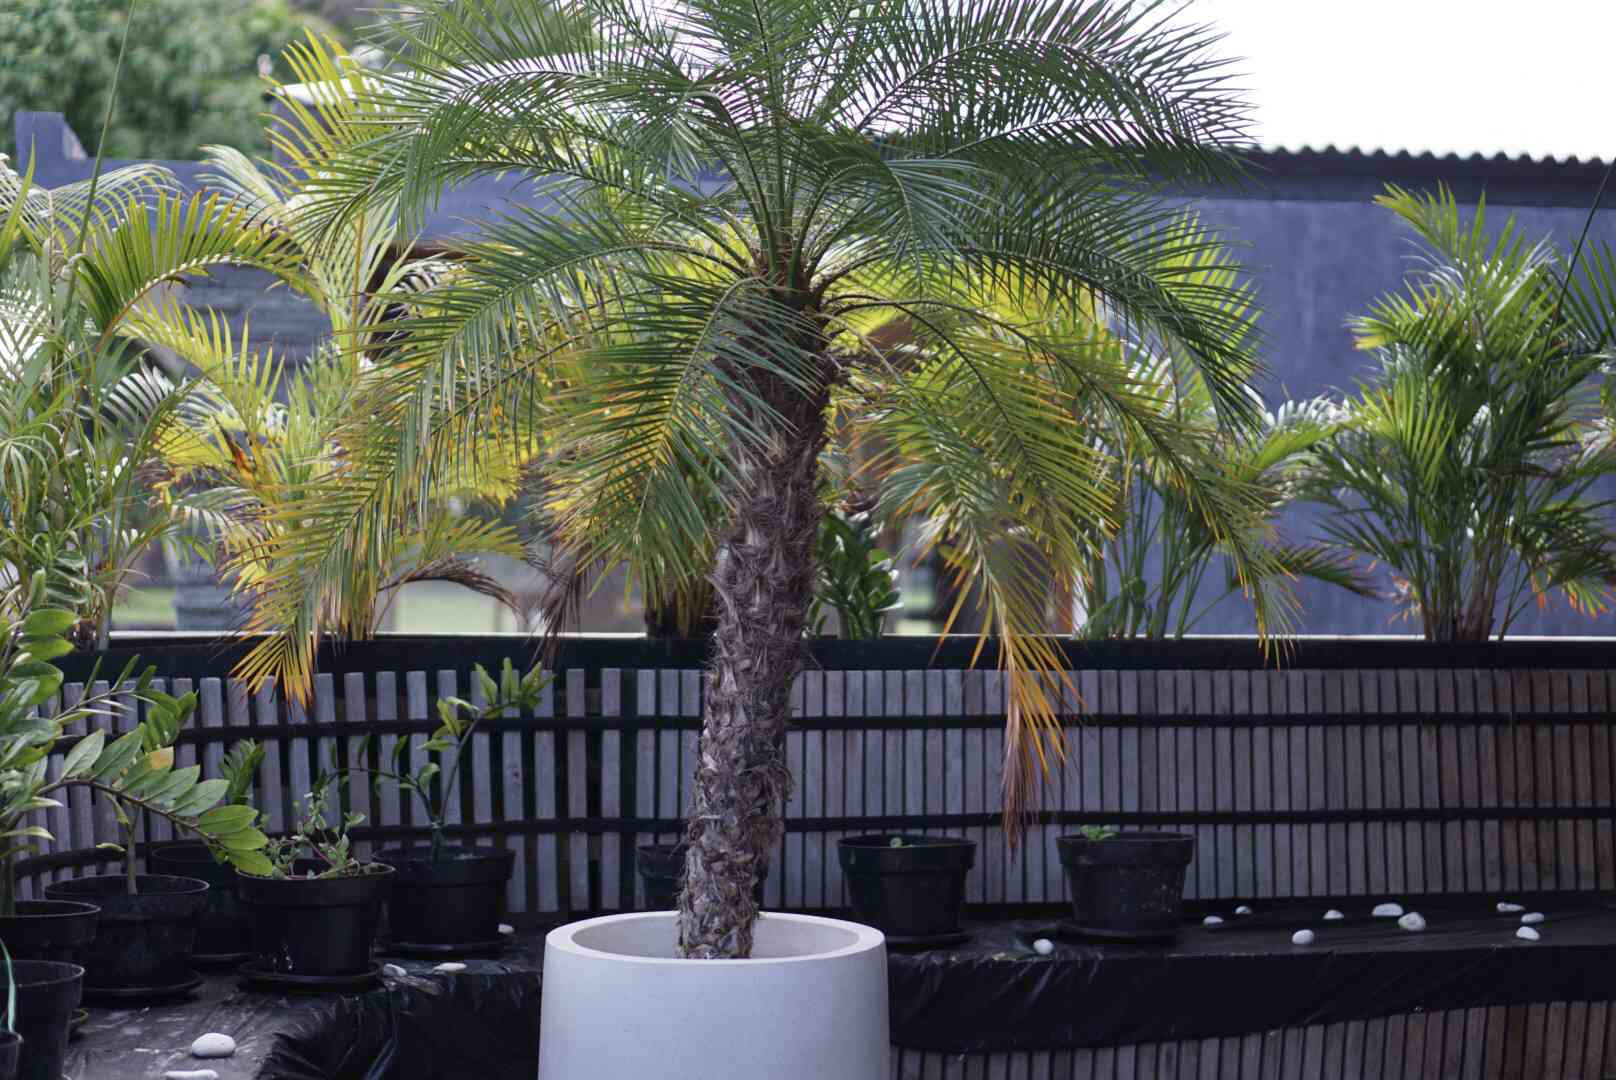 Robellini palm tree in white round pot in with yellow-green fronds in outdoor patio